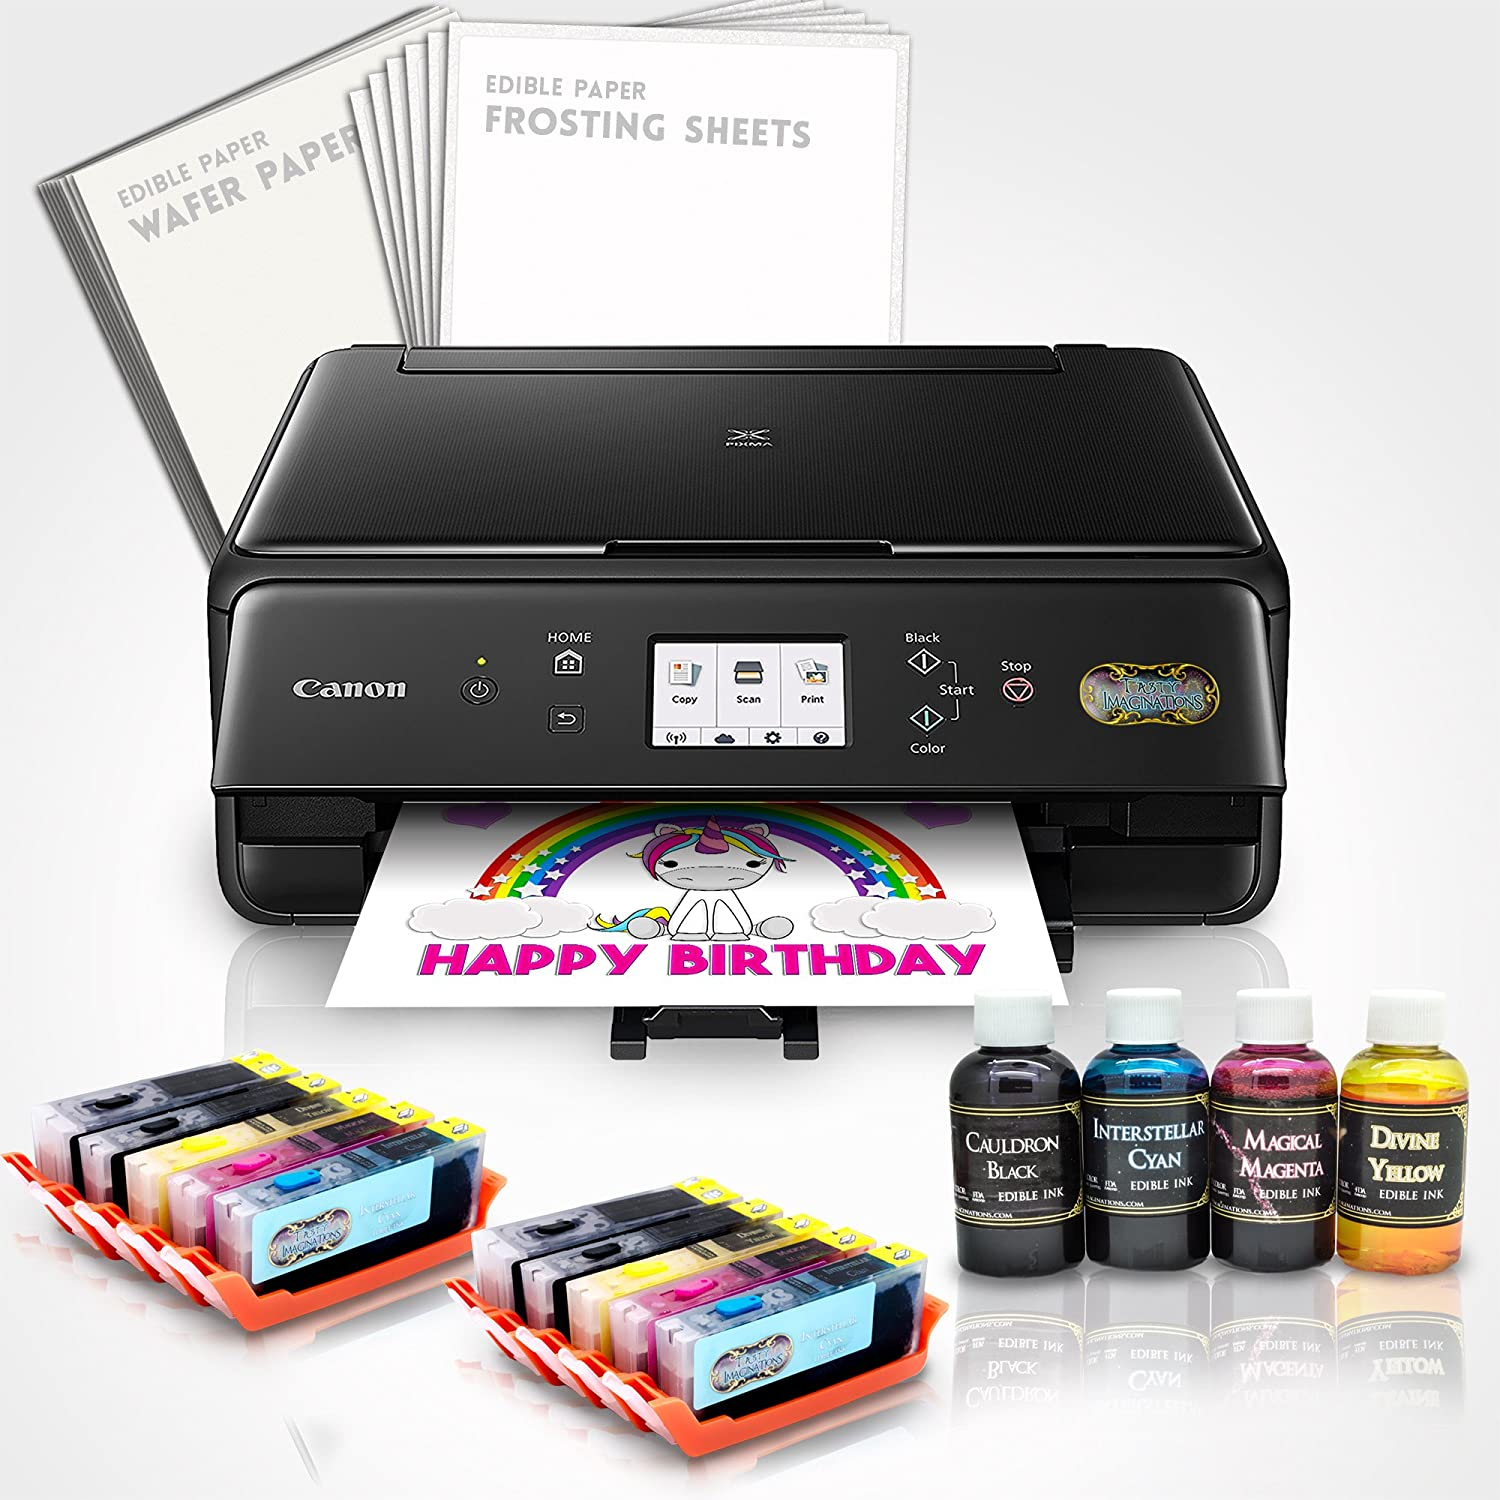 Amazon.com: Edible Printer Bundle - Includes XL Edible Ink Cartridges, XL  Cleaning Cartridges & Frosting Sheets: Electronics